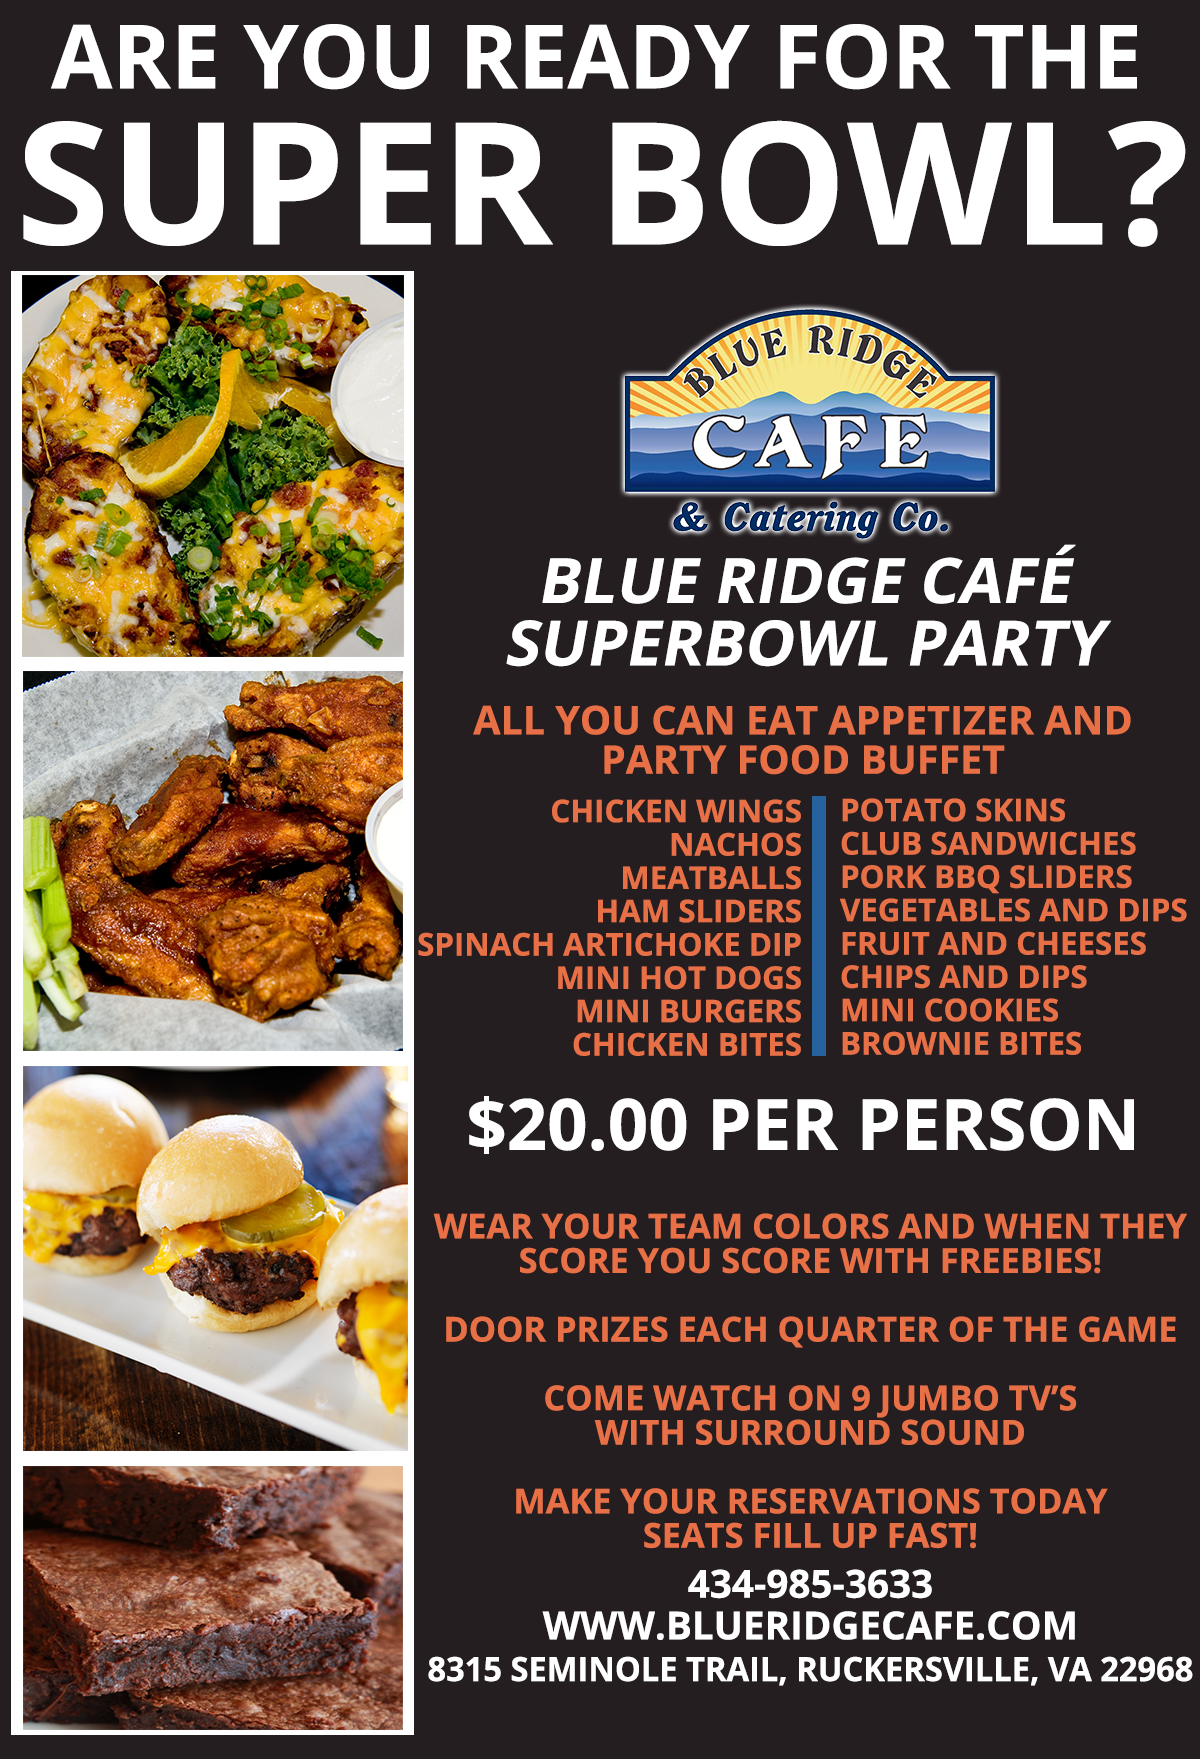 Are You Ready For The Super Bowl? Blue Ridge Cafe & Catering Co. Super Bowl Party - All You Can Eat Appetizer and Party Food Buffet. $20 Per Person. Wear Your Team Colors and When They Score You Score with Freebies! Door Prizes Each Quarter of The Game. Come Watch on 9 Jumbo TV's With Surround Sound. Make Your Reservations Today, Seats fill up fast!